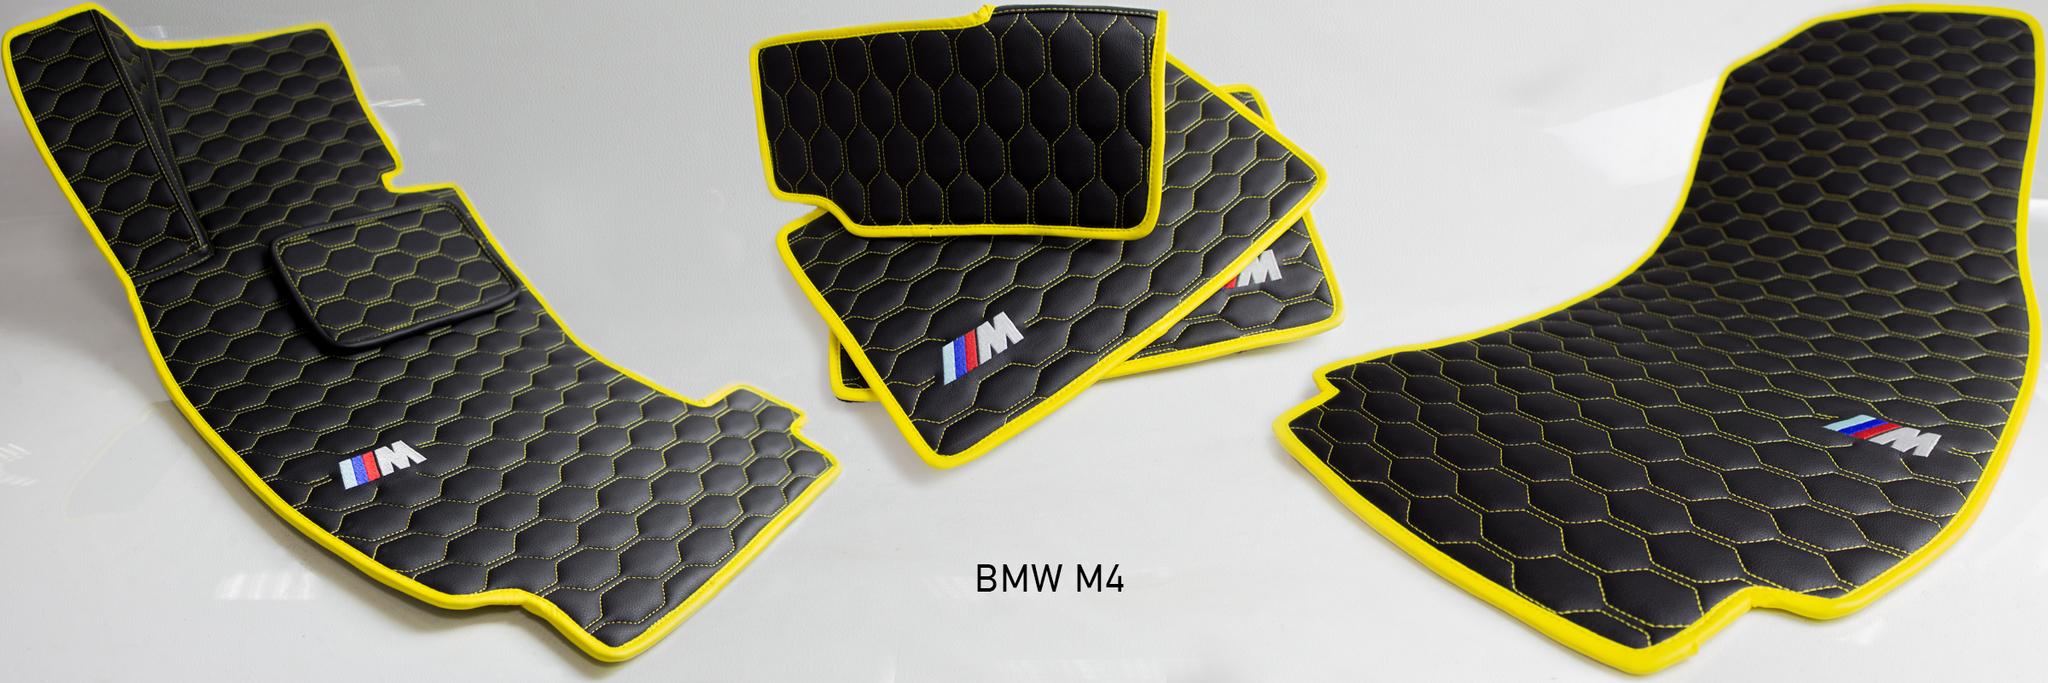 images-products-1-7882-232988362-BMW_M4.jpg